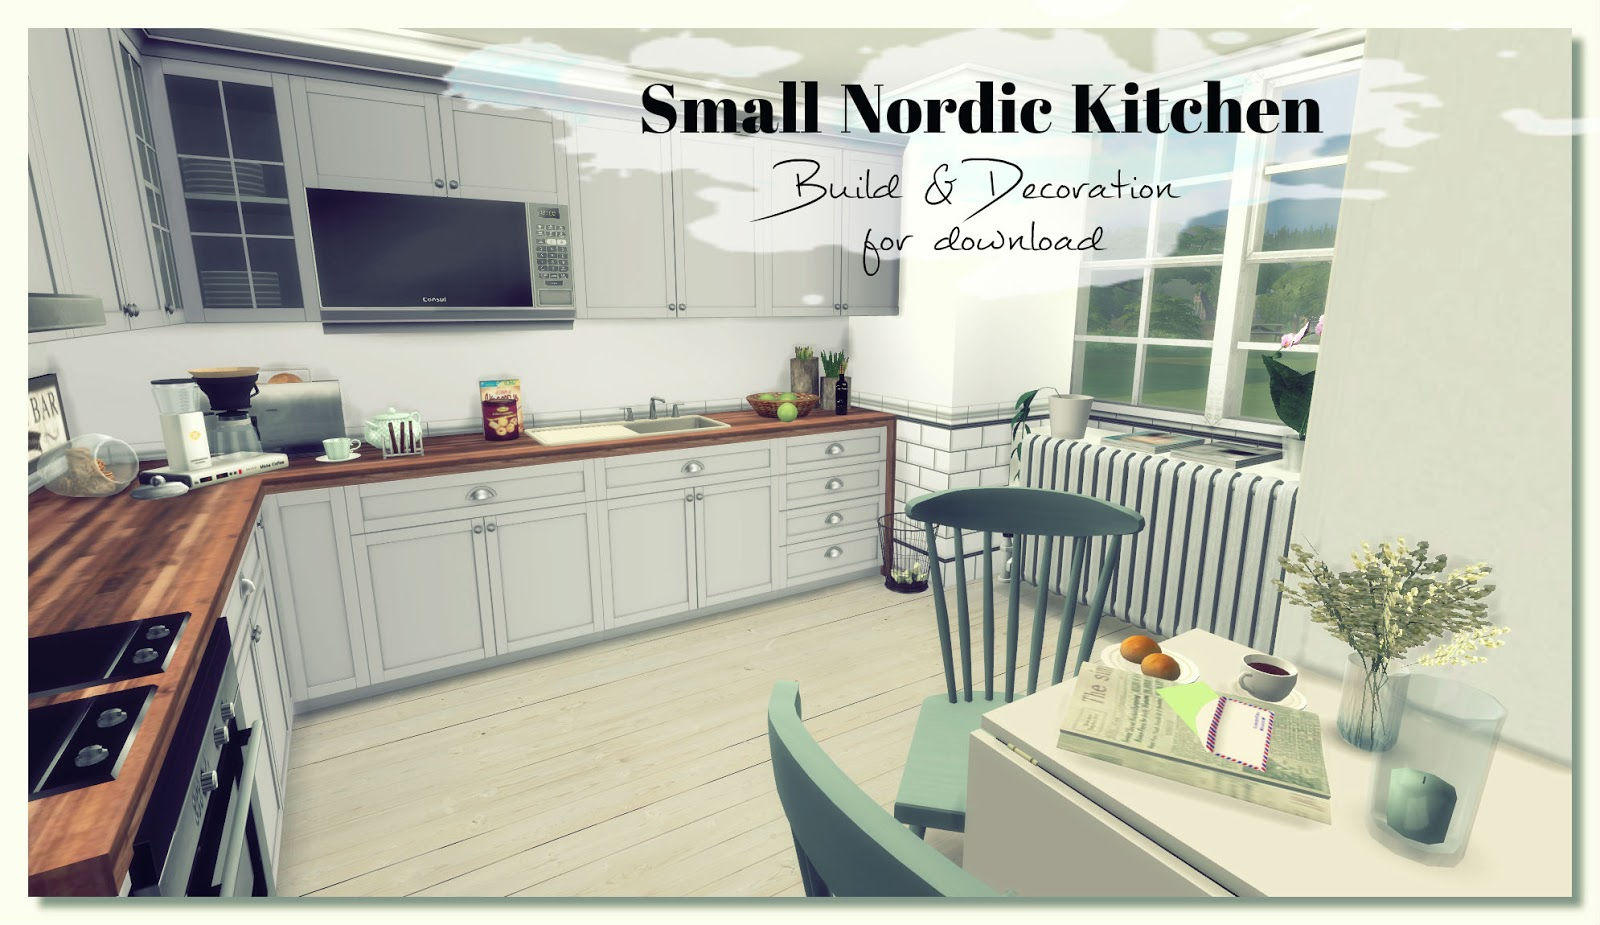 Sims 4 Small Nordic Kitchen Room Mods For Download